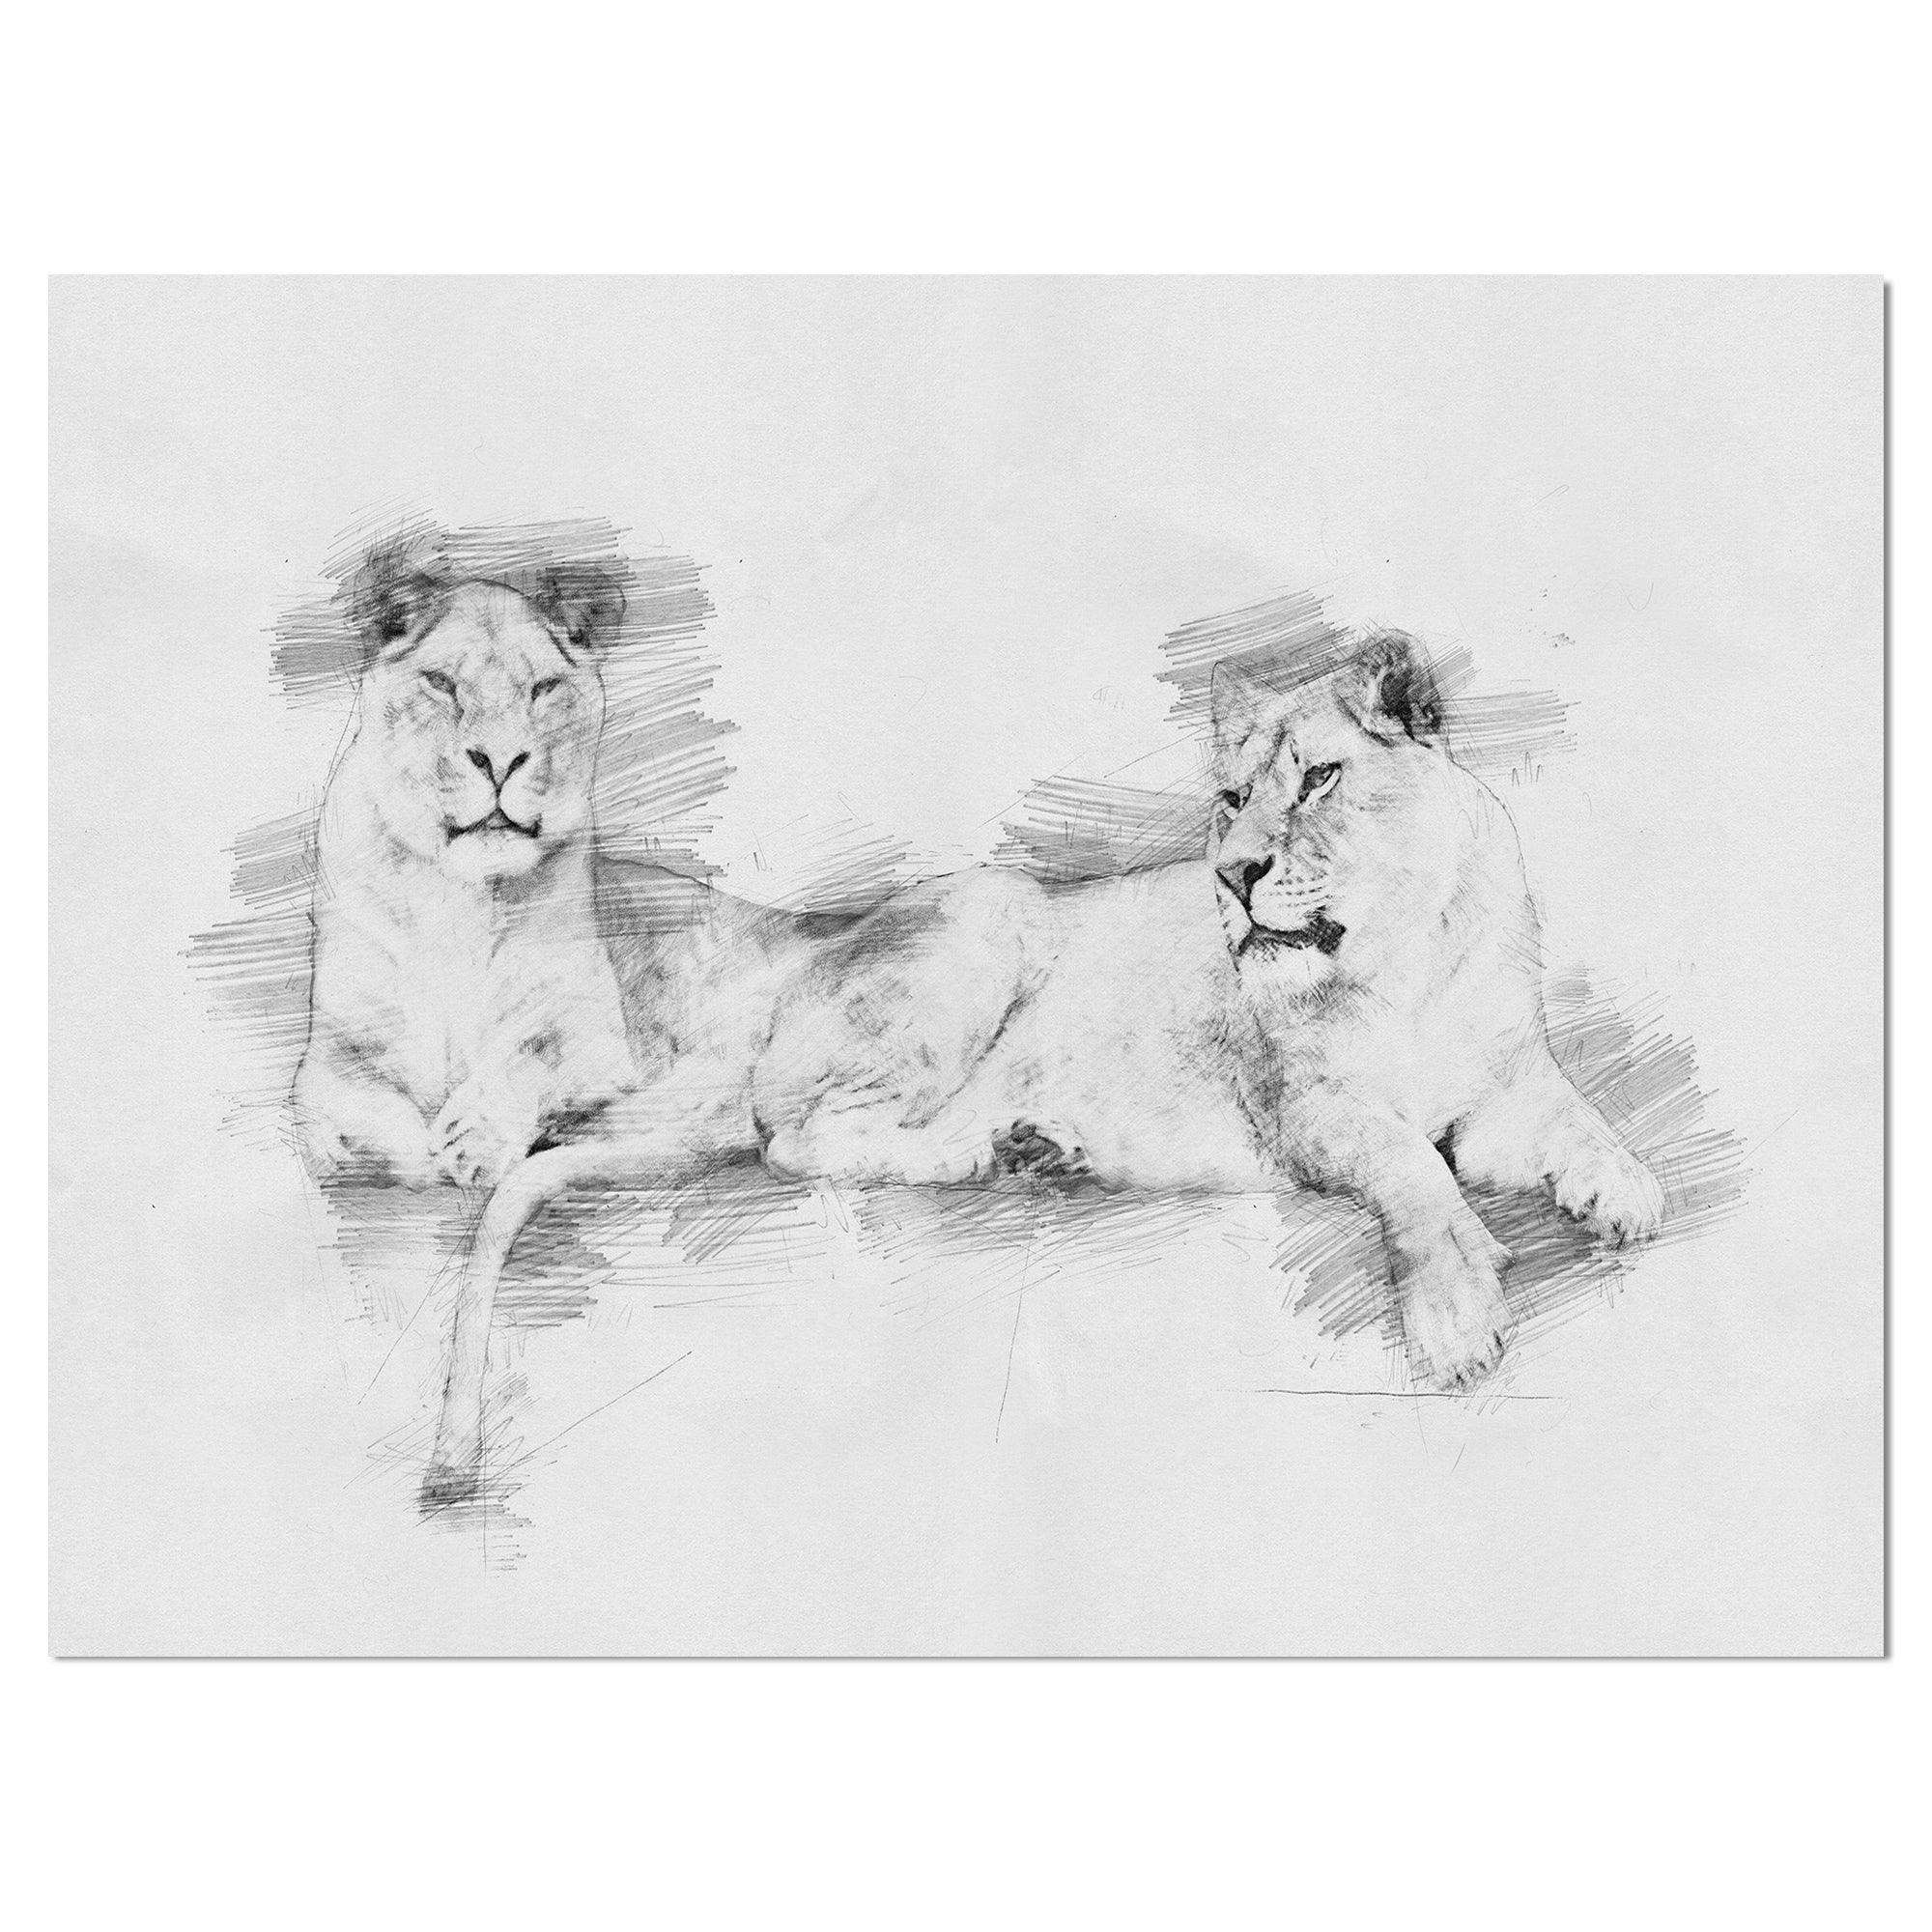 Designart black and white lion pencil in pencil sketch animals painting print on wrapped canvas